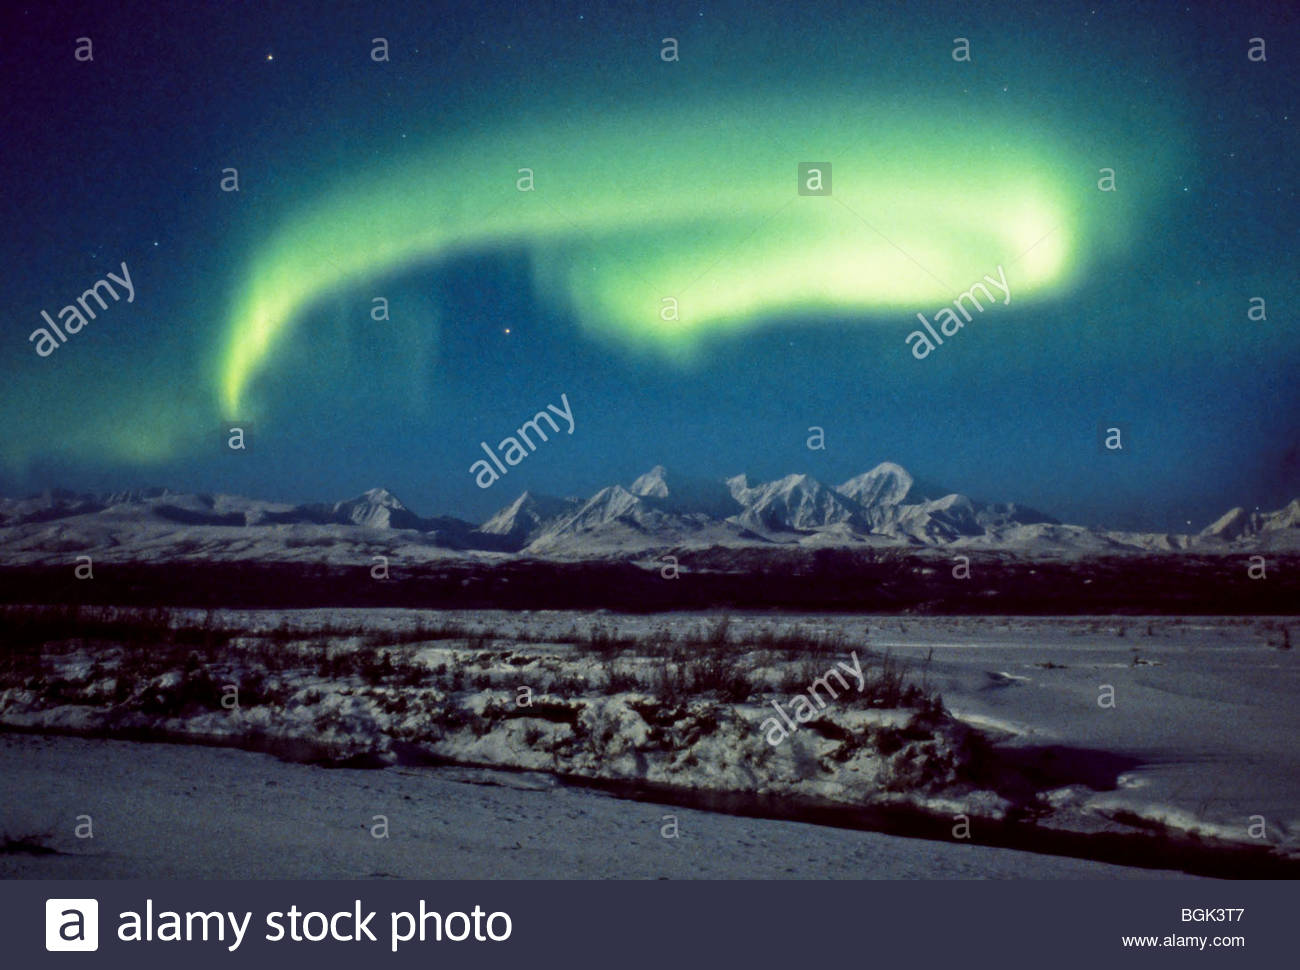 Alaska, Big Delta. The comet Hale-Bopp shines brightly through northern lights over the Delta River. Stock Photo